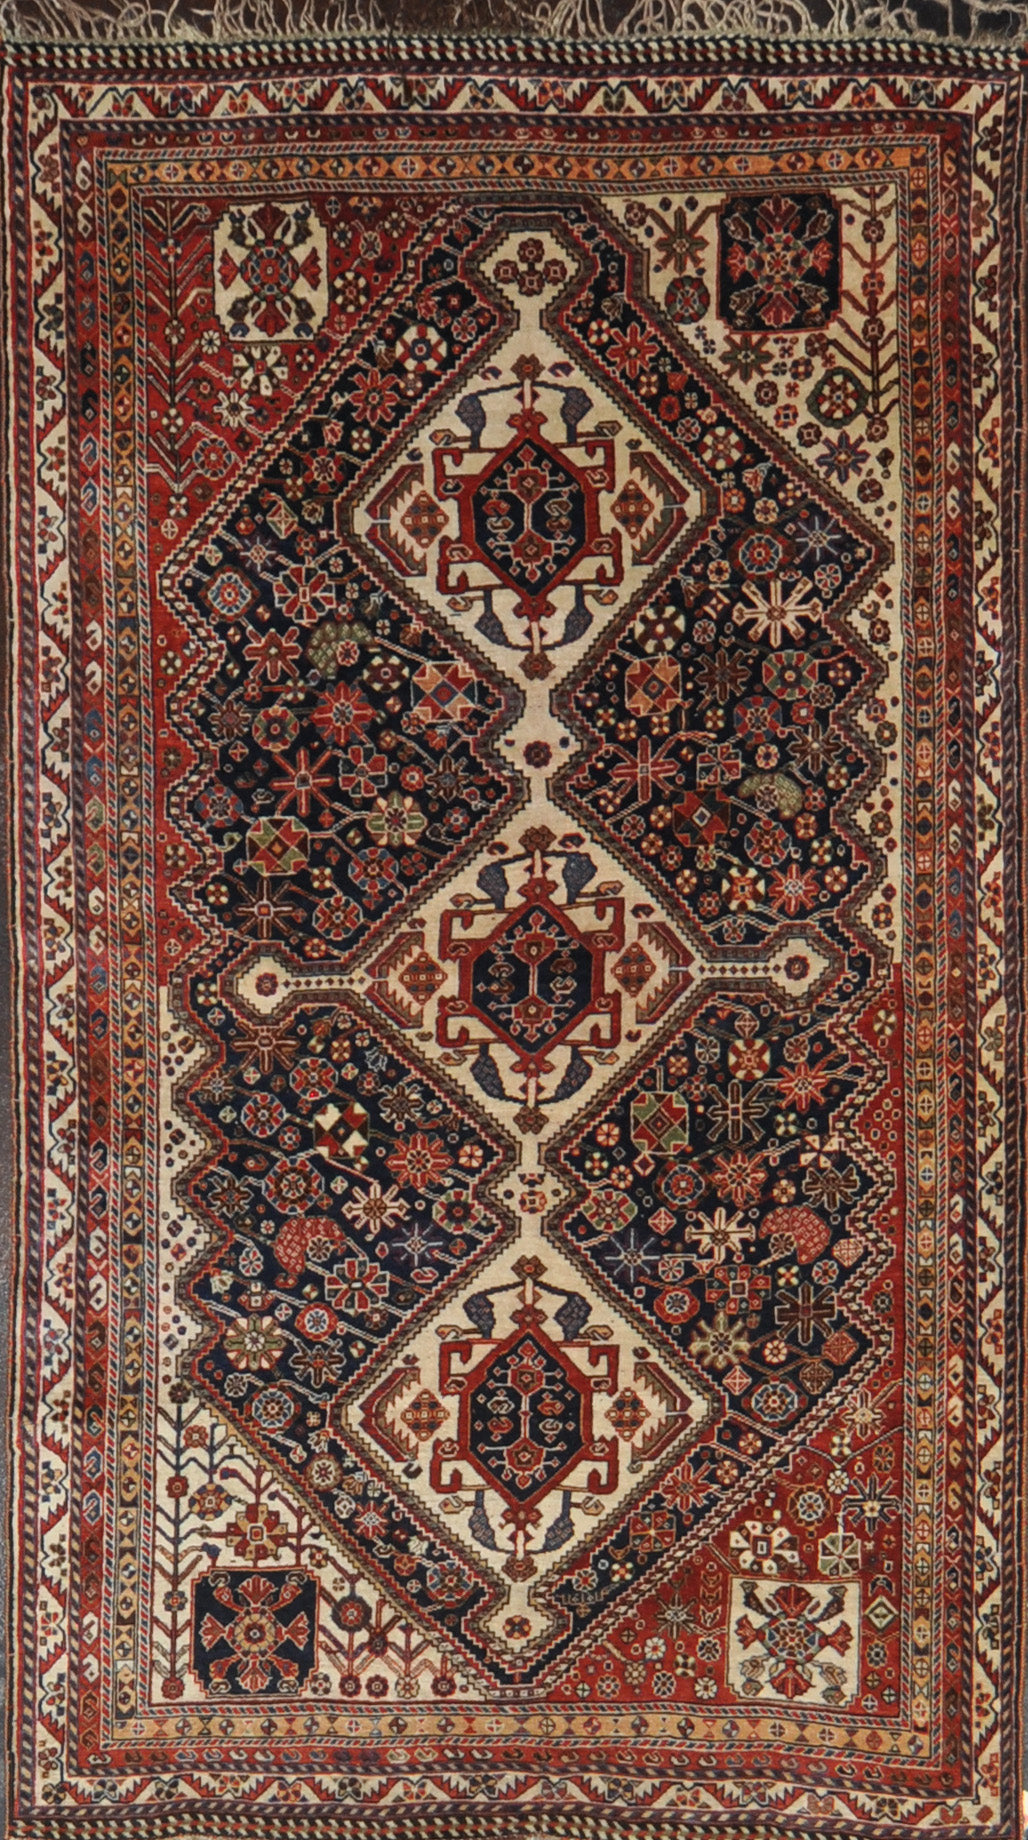 Rug Id: 4208 Antique Gashgaie 4.8x8.4